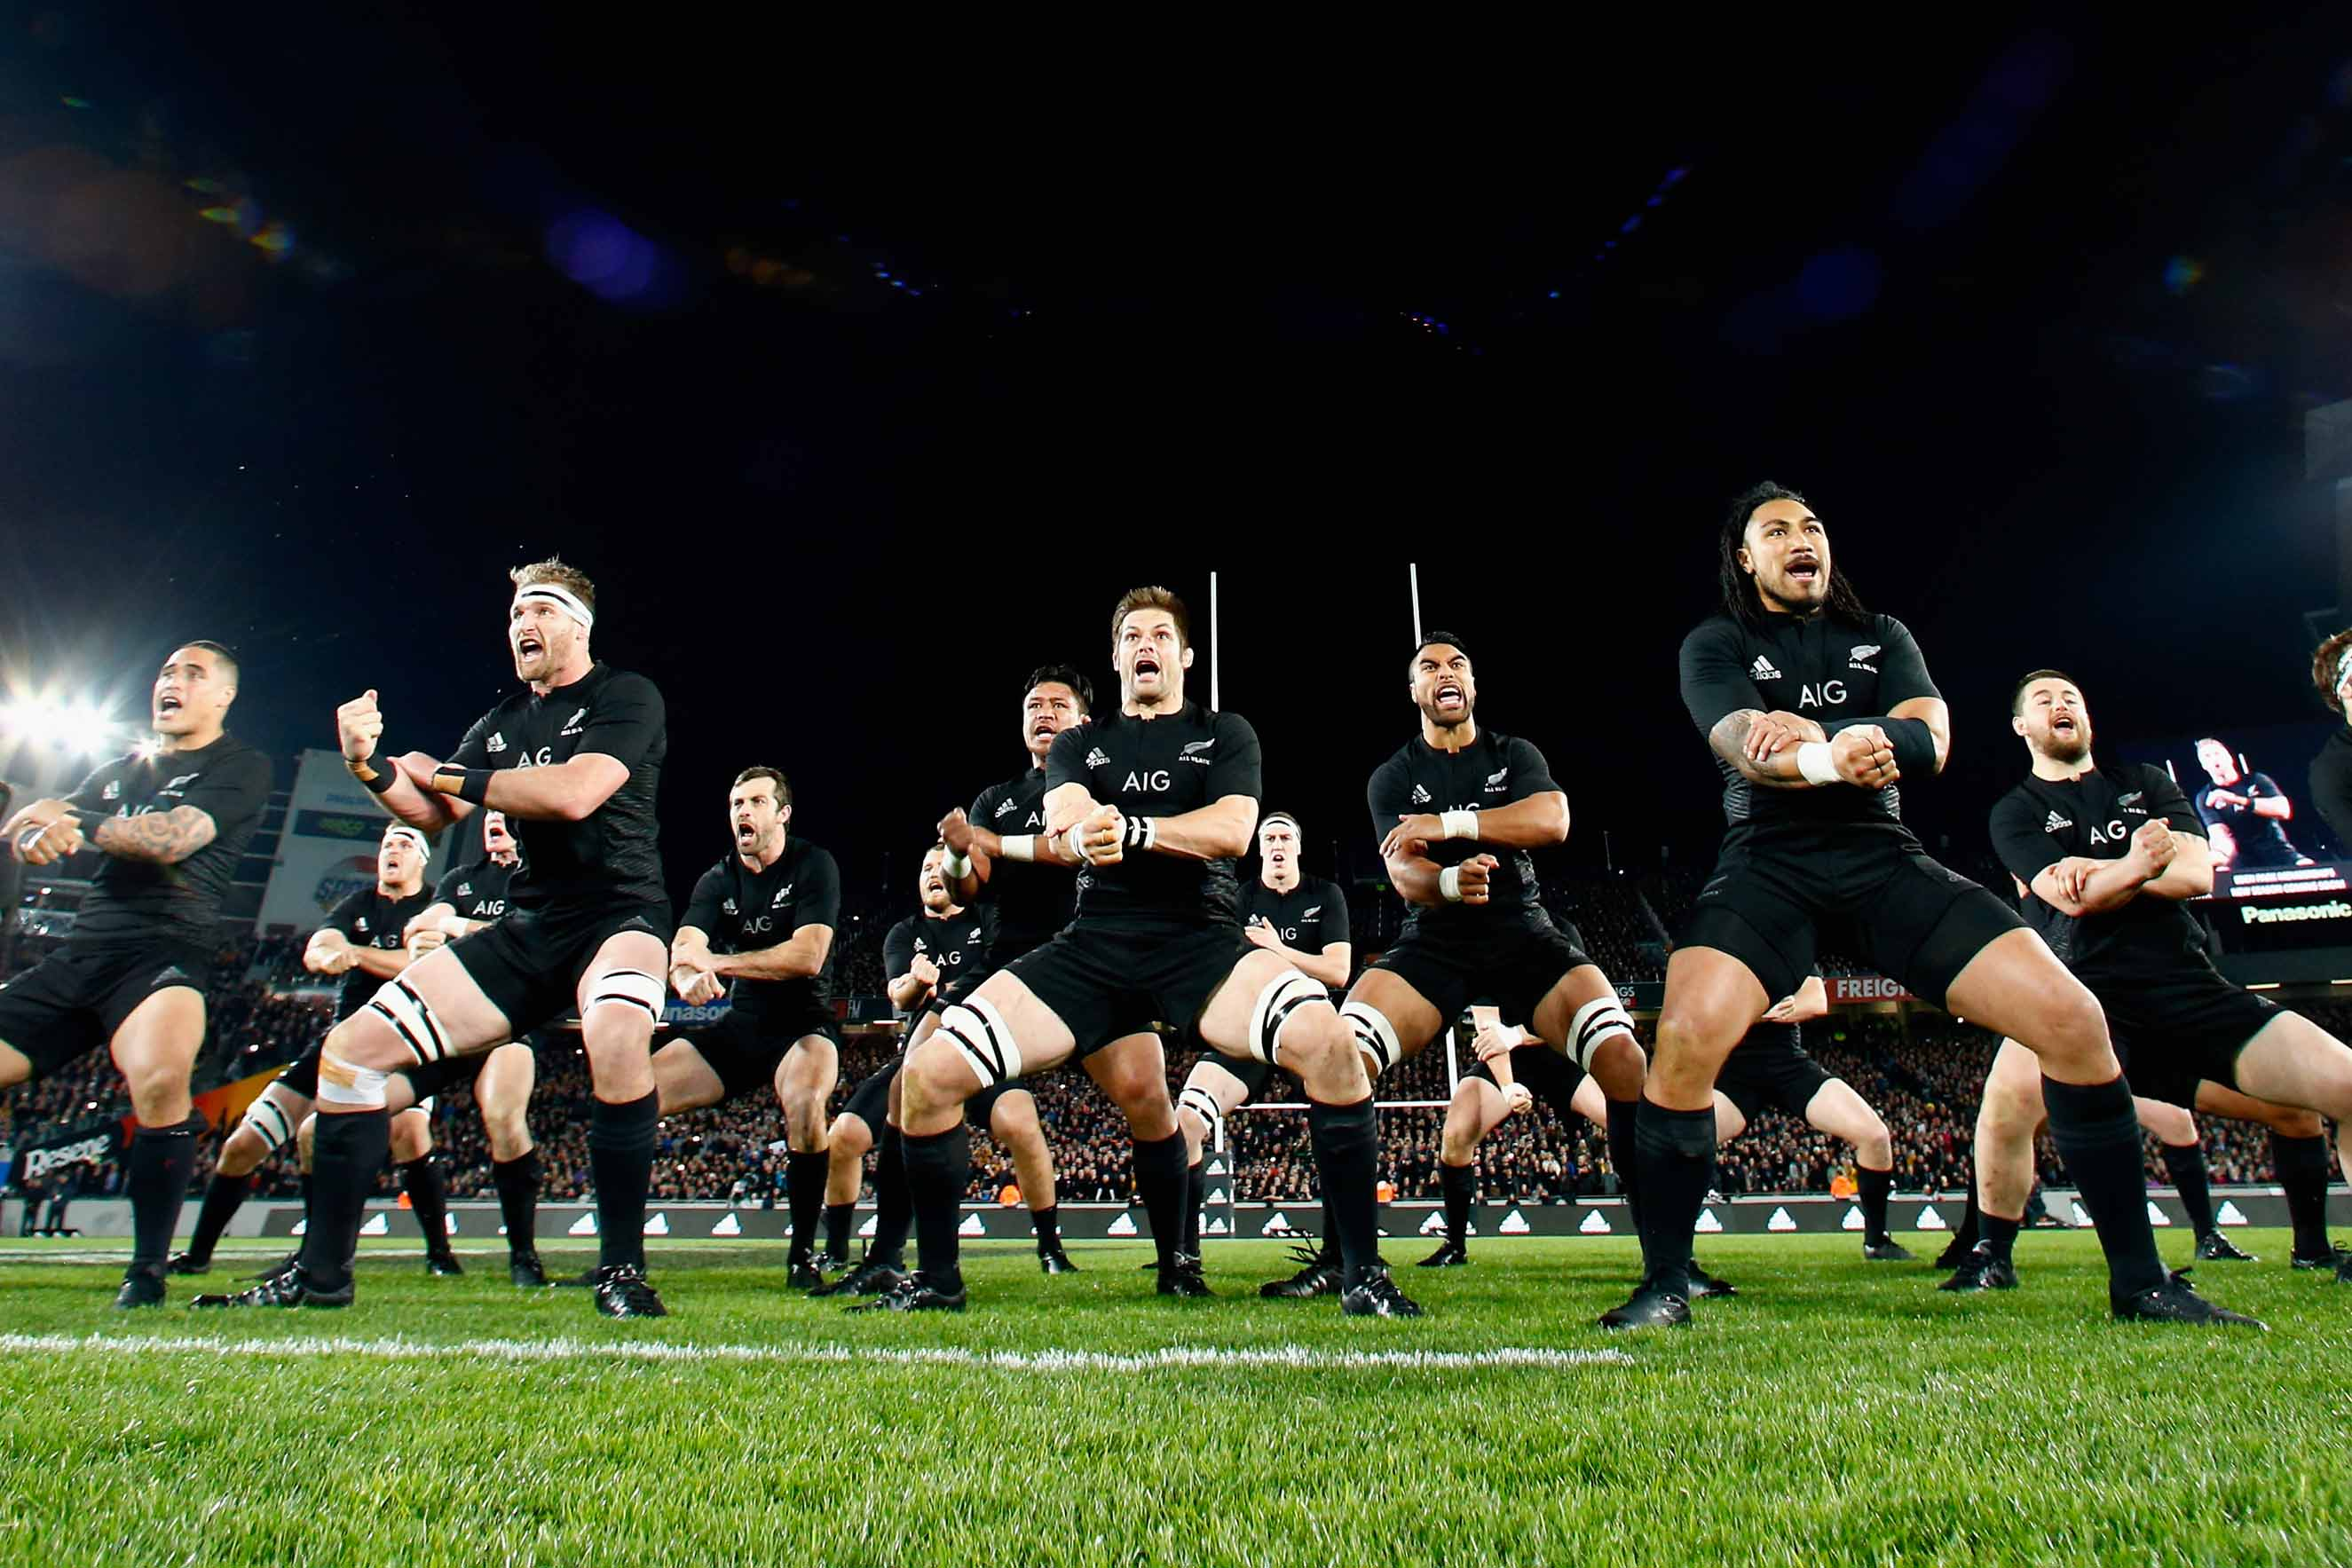 From left: Kieran Read, Richie McCaw and Ma'a Nonu of the All Blacks perform the haka  during The Rugby Championship, Bledisloe Cup match between the New Zealand All Blacks and the Australian Wallabies at Eden Park on Aug. 15, 2015 in Auckland.